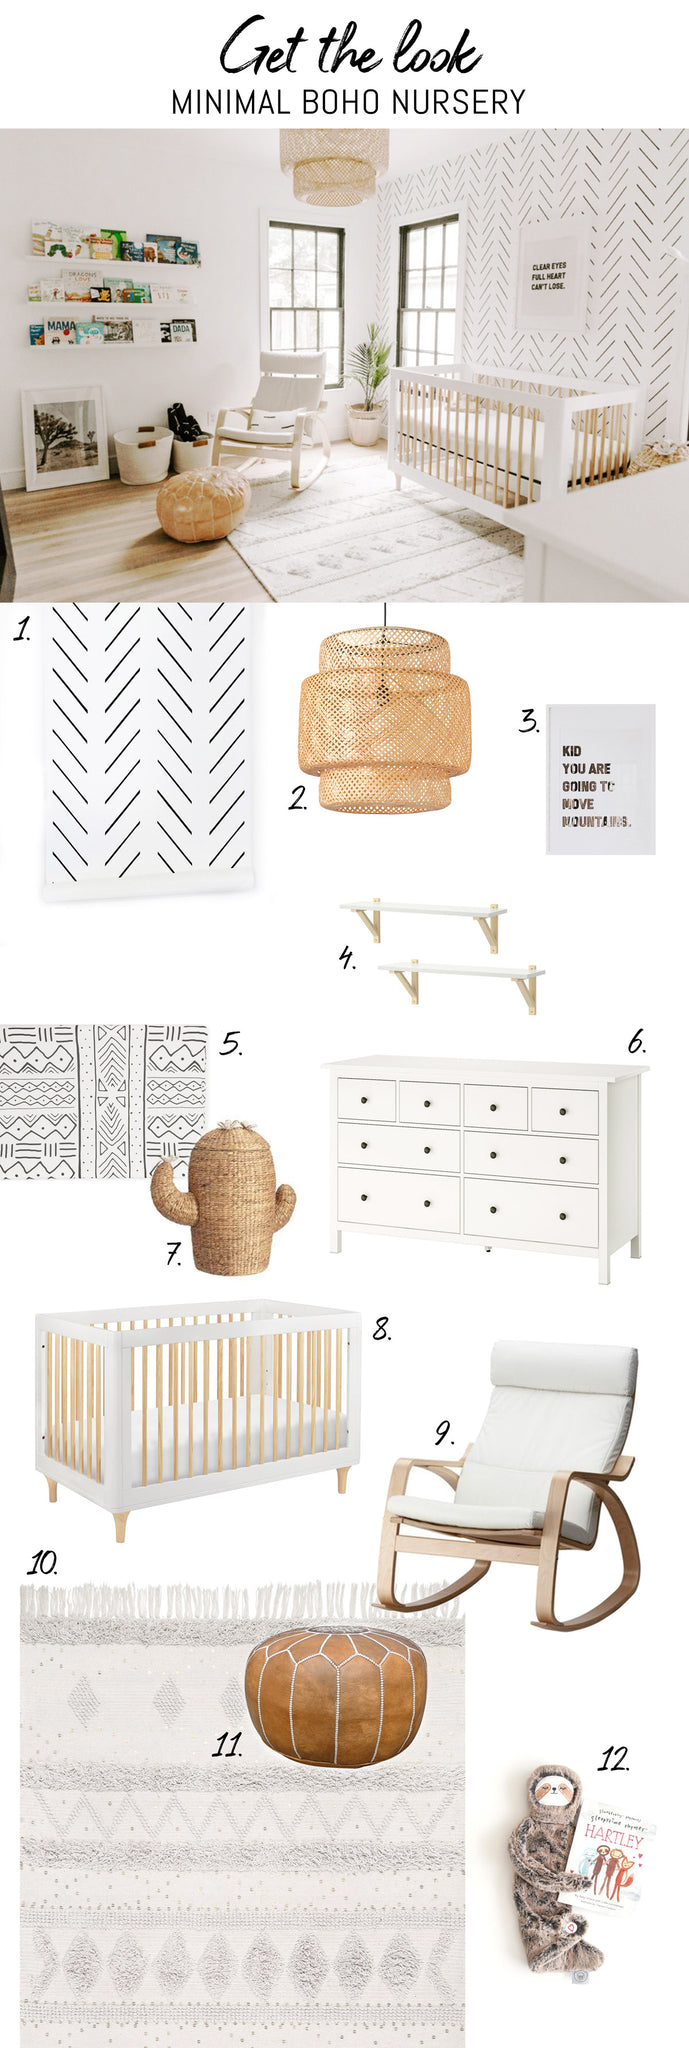 Minimal boho nursery inspiration, get the look mood board